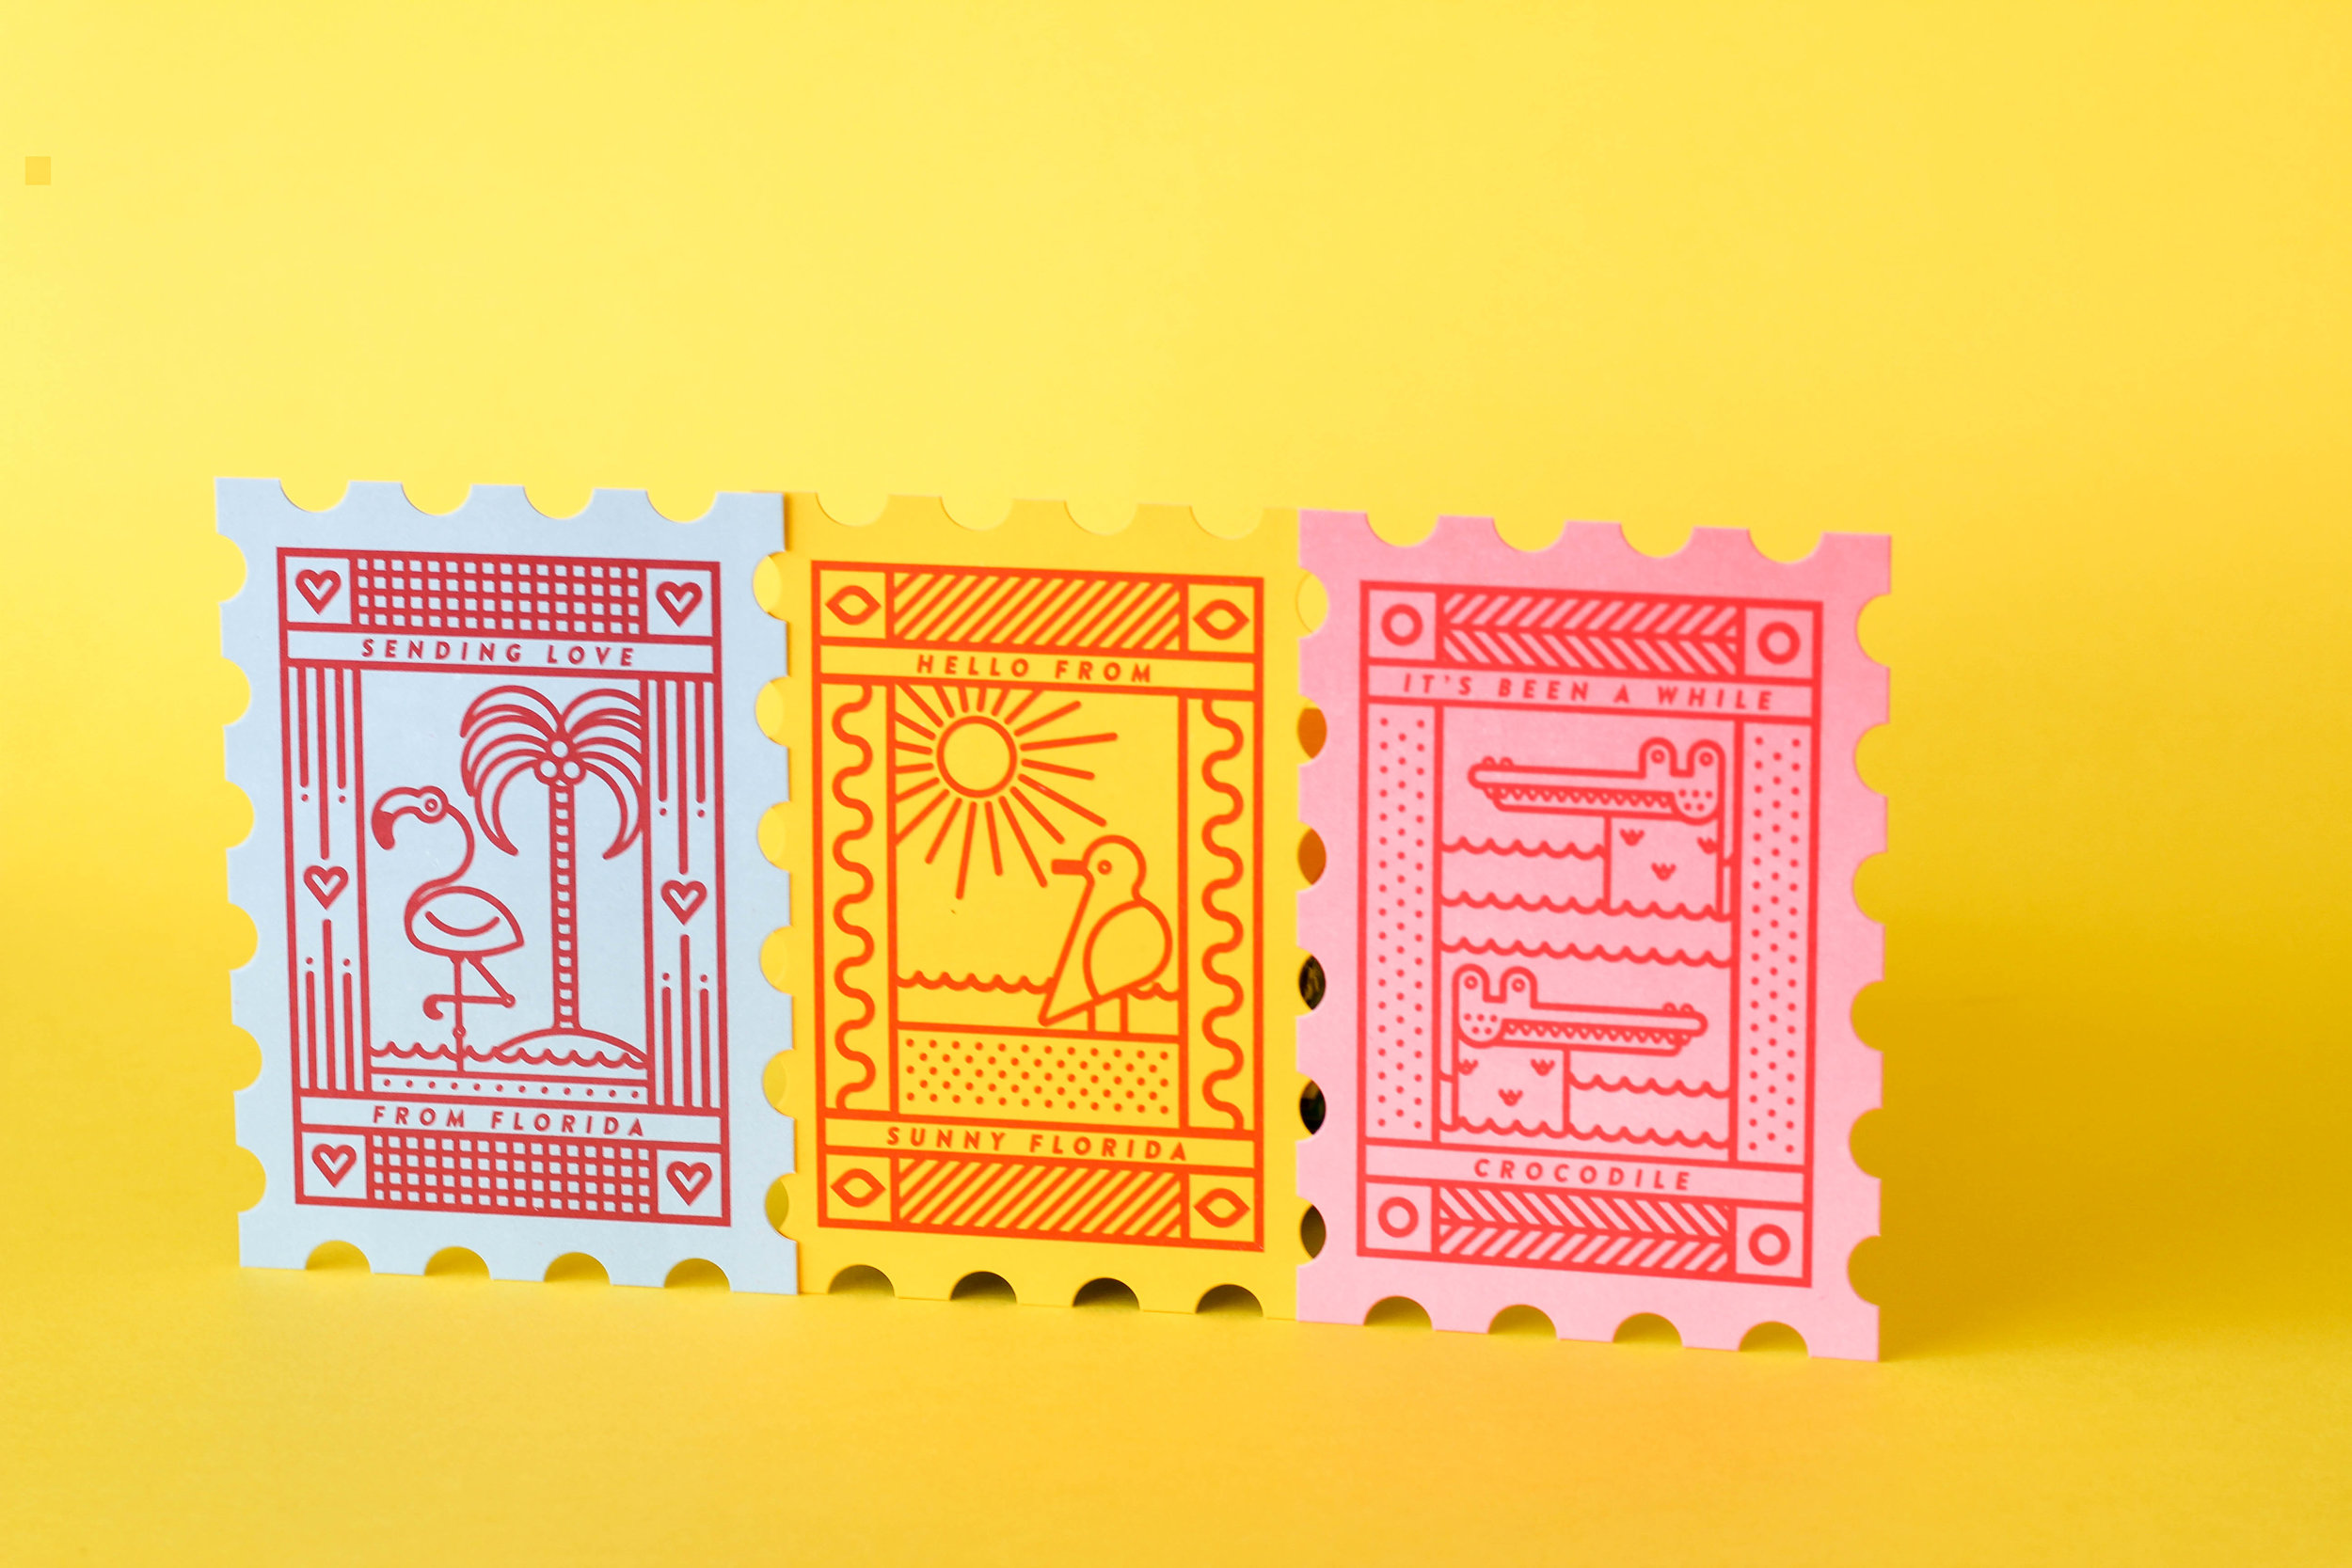 florida-stamp-postcard-set-letterpress-06.jpg